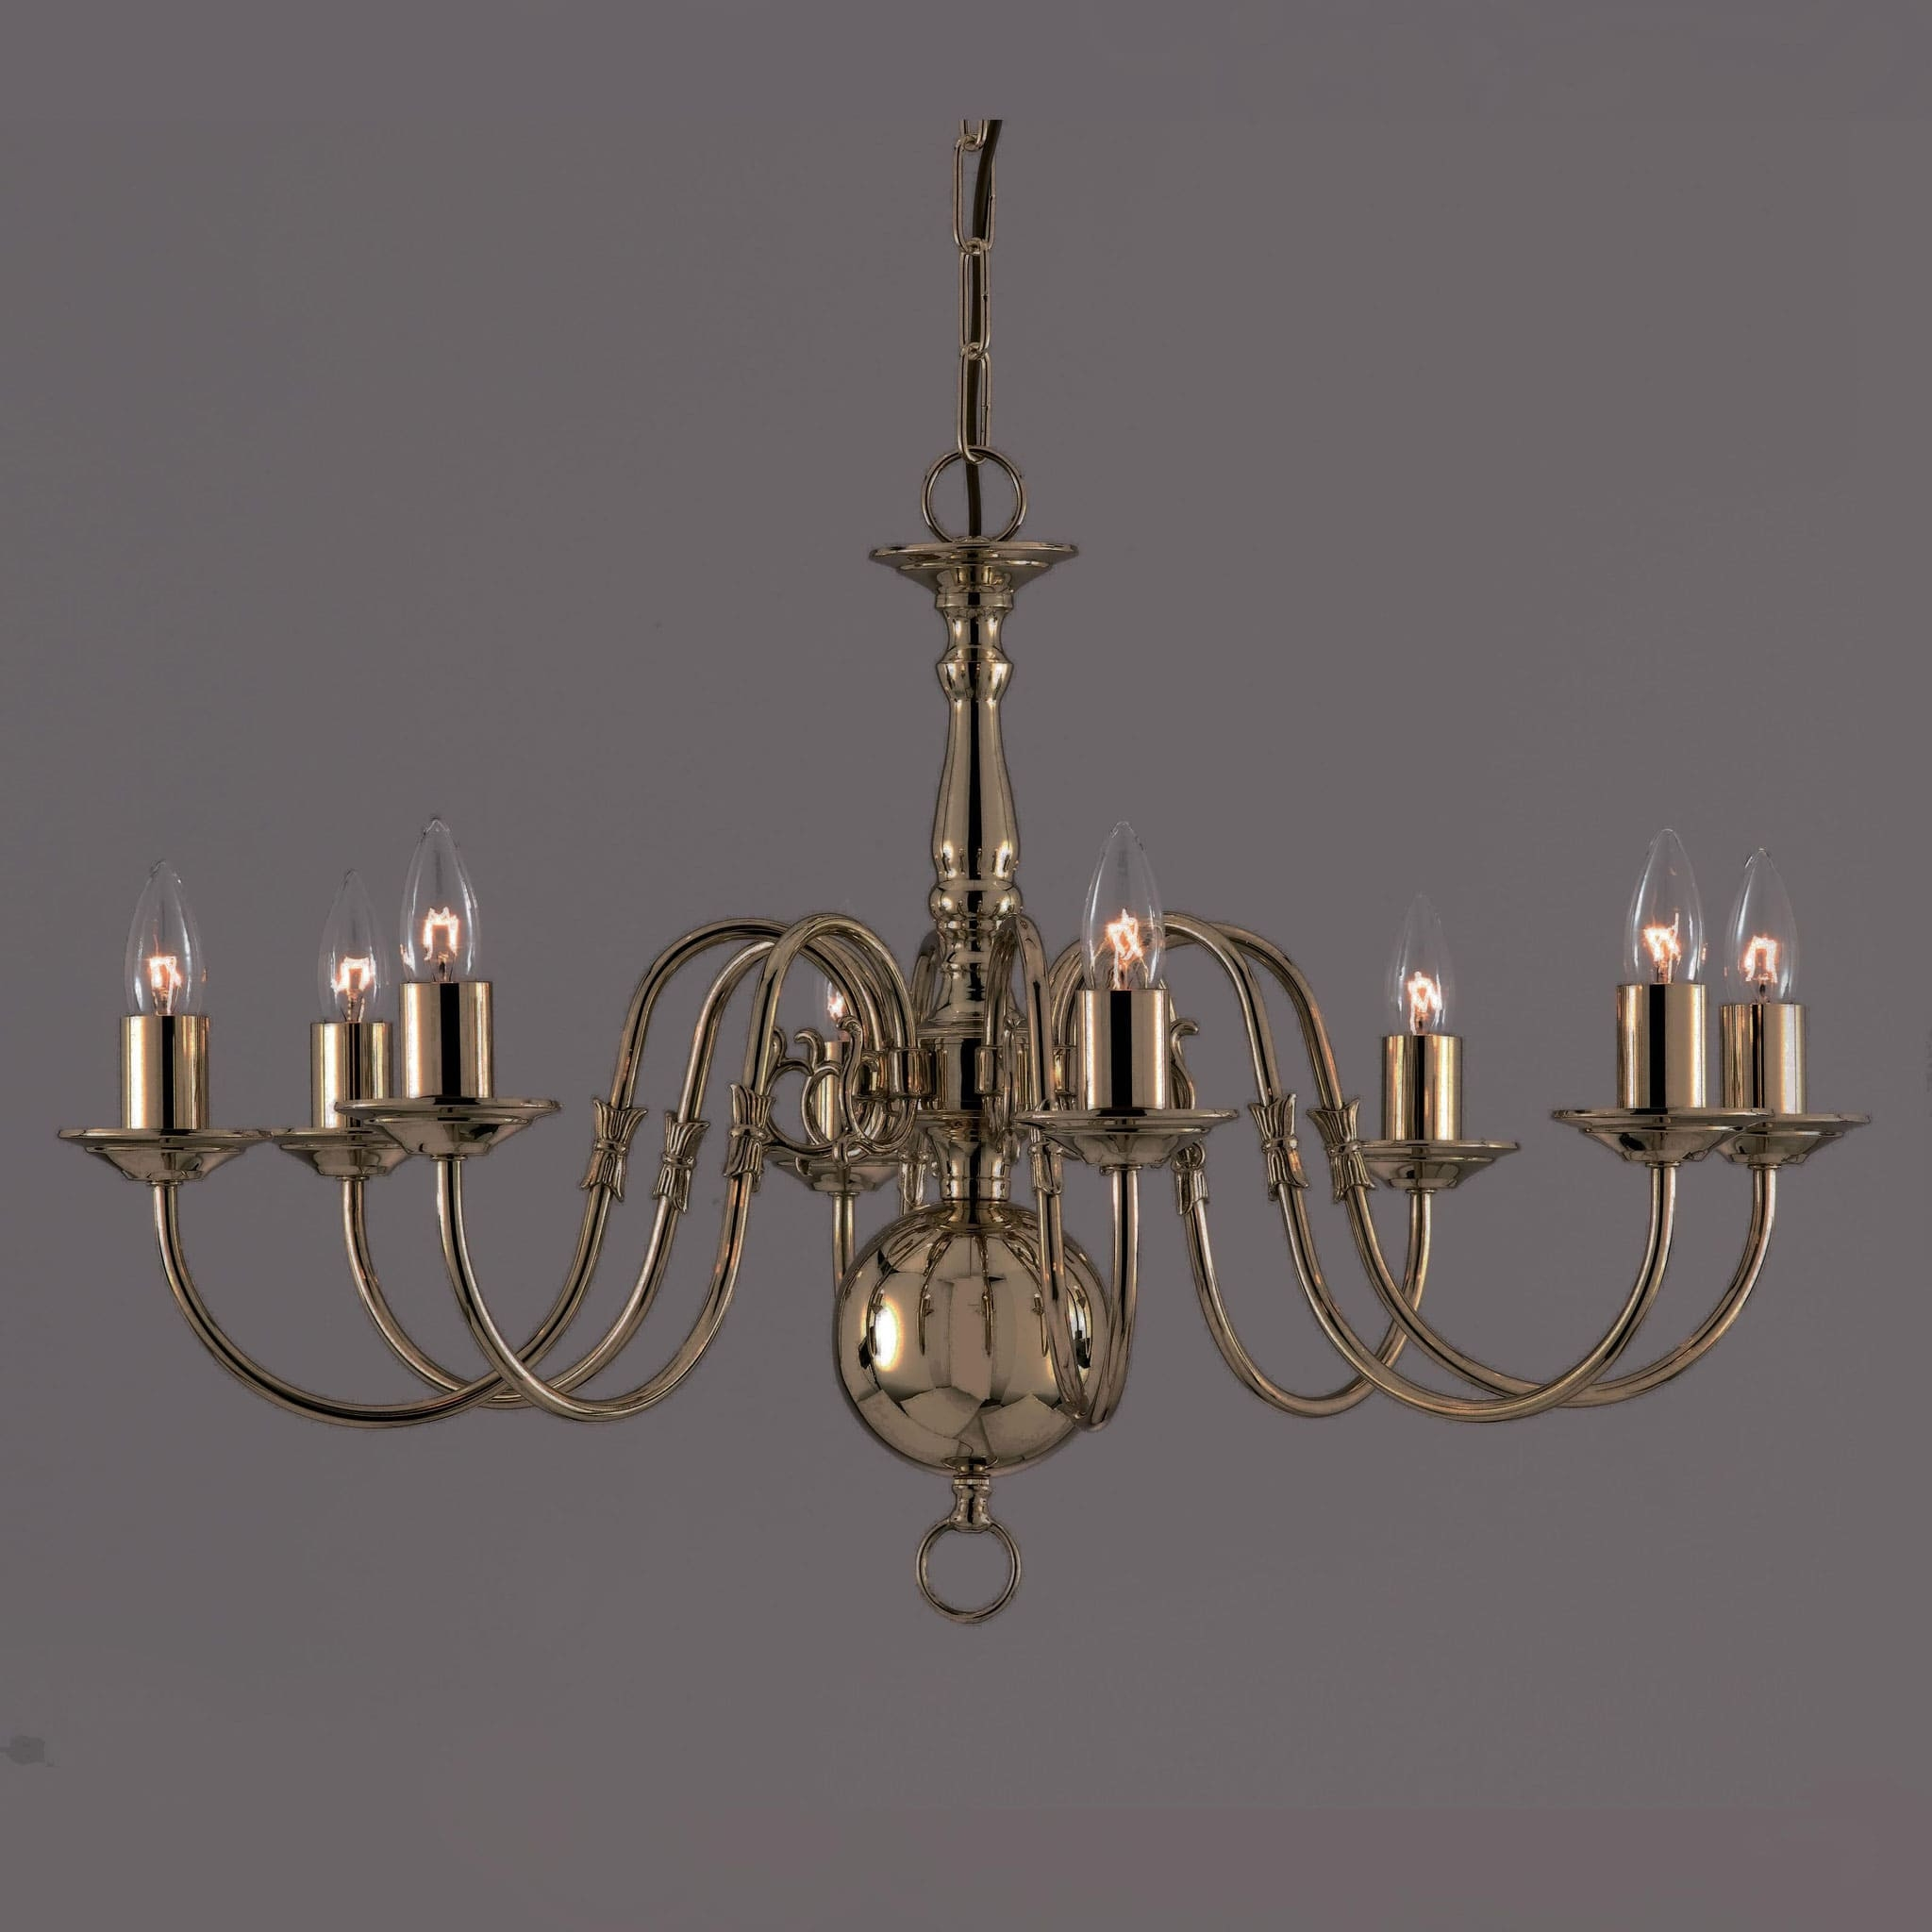 Featured Image of Old Brass Chandeliers